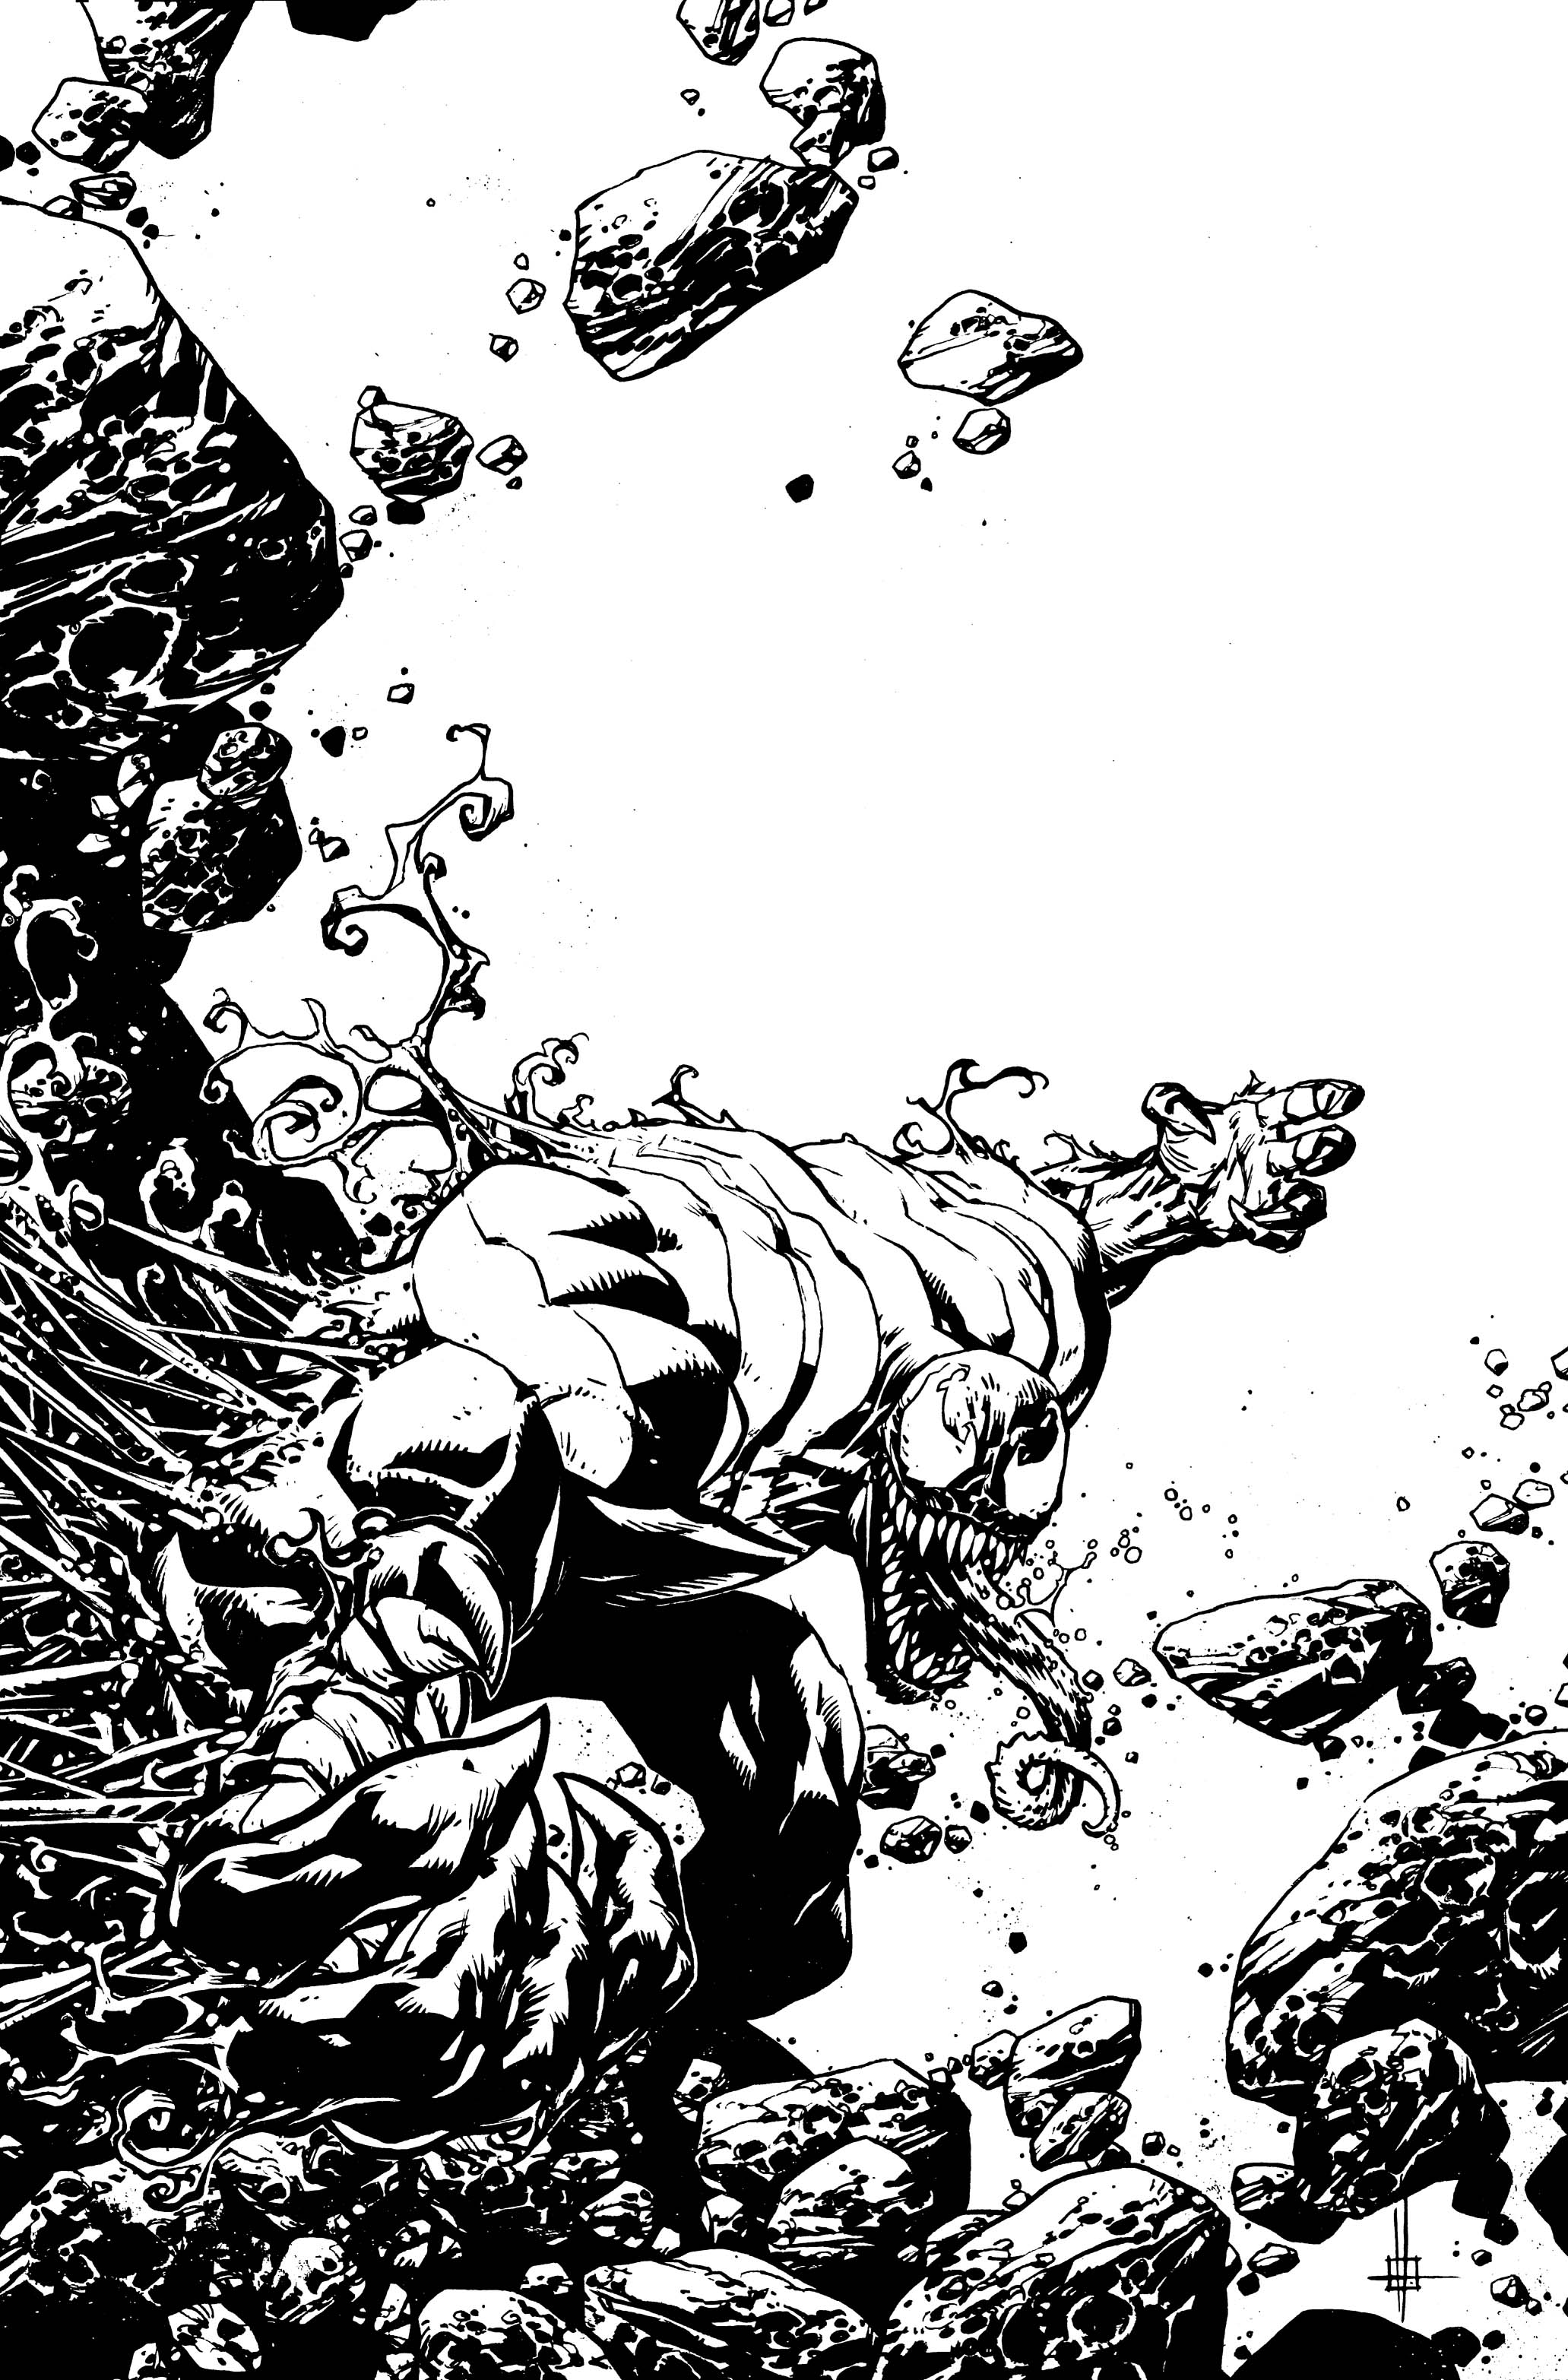 Venom Spaceknight cover inks low res.jpg